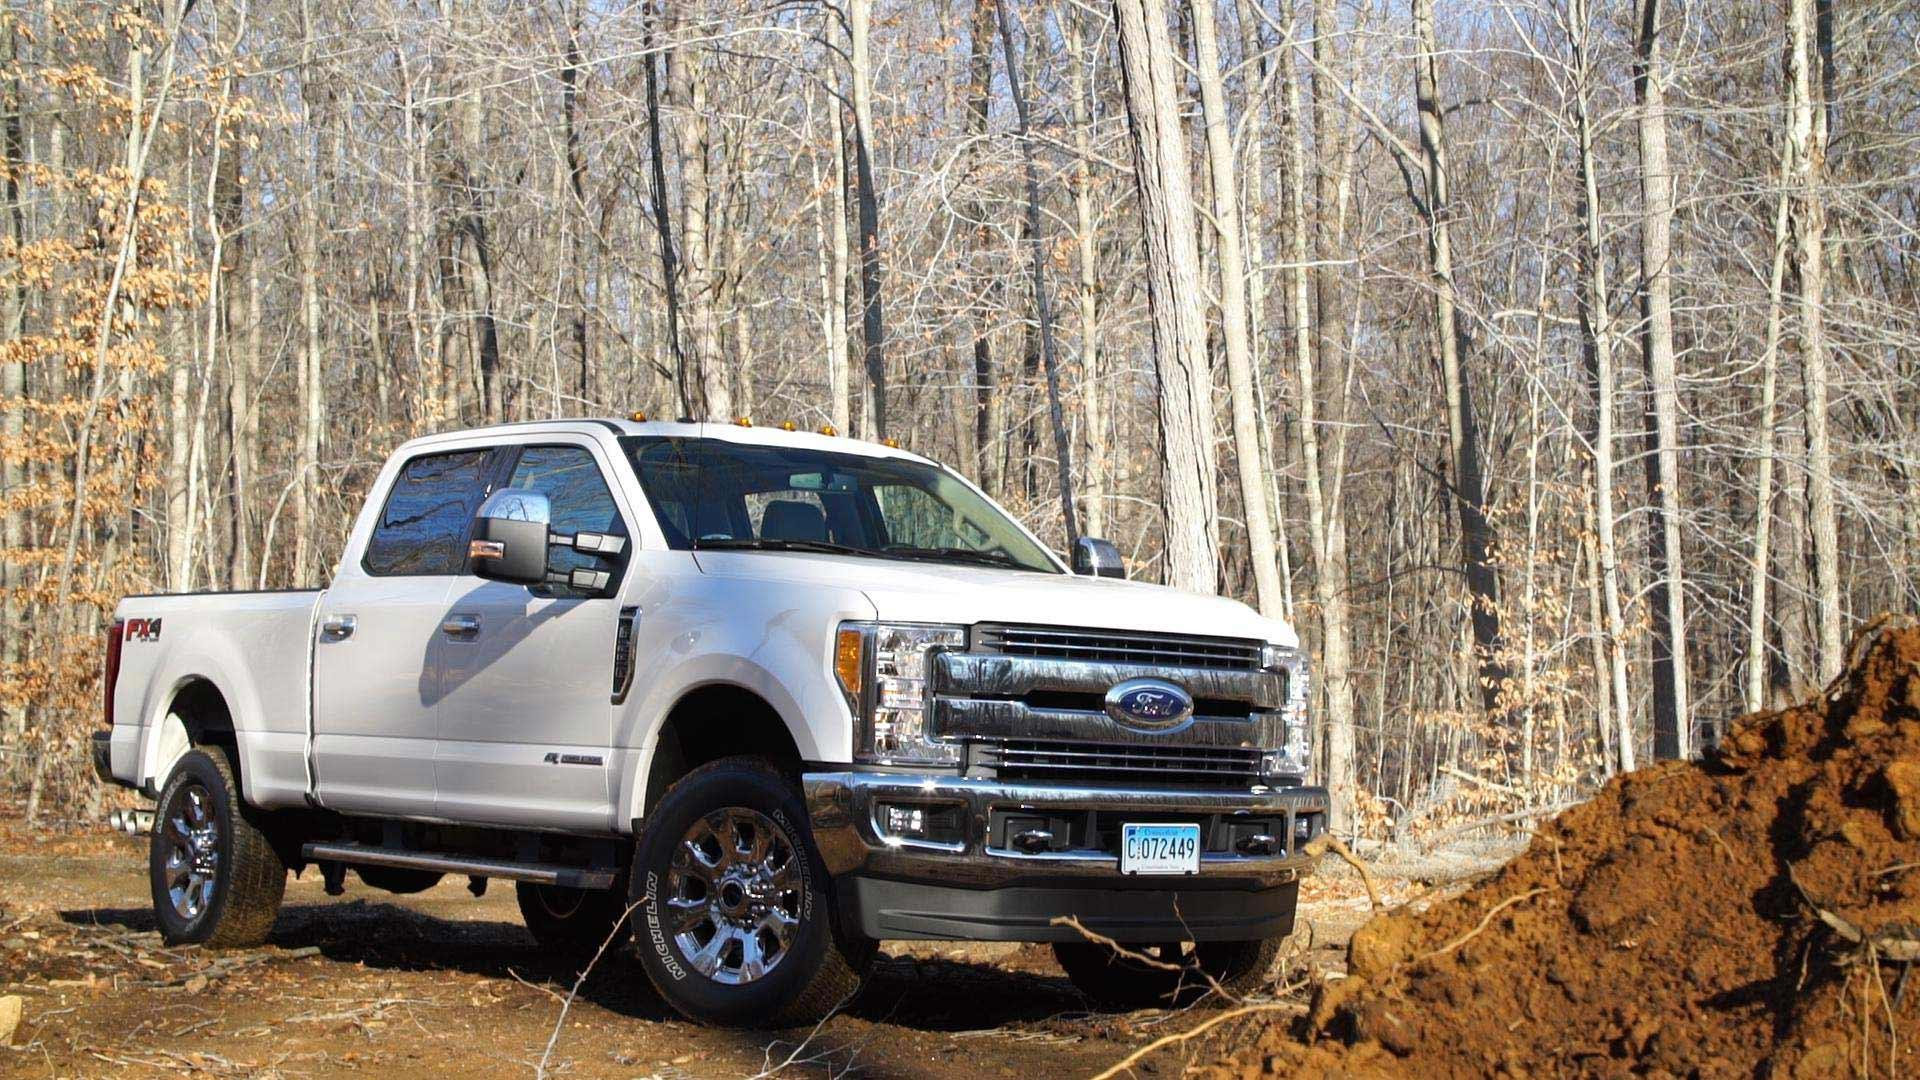 2014 ford f 350 truck xl - Big Aluminum Bodied Beast Brings Toughness Technology And Gratuitous Torque To The